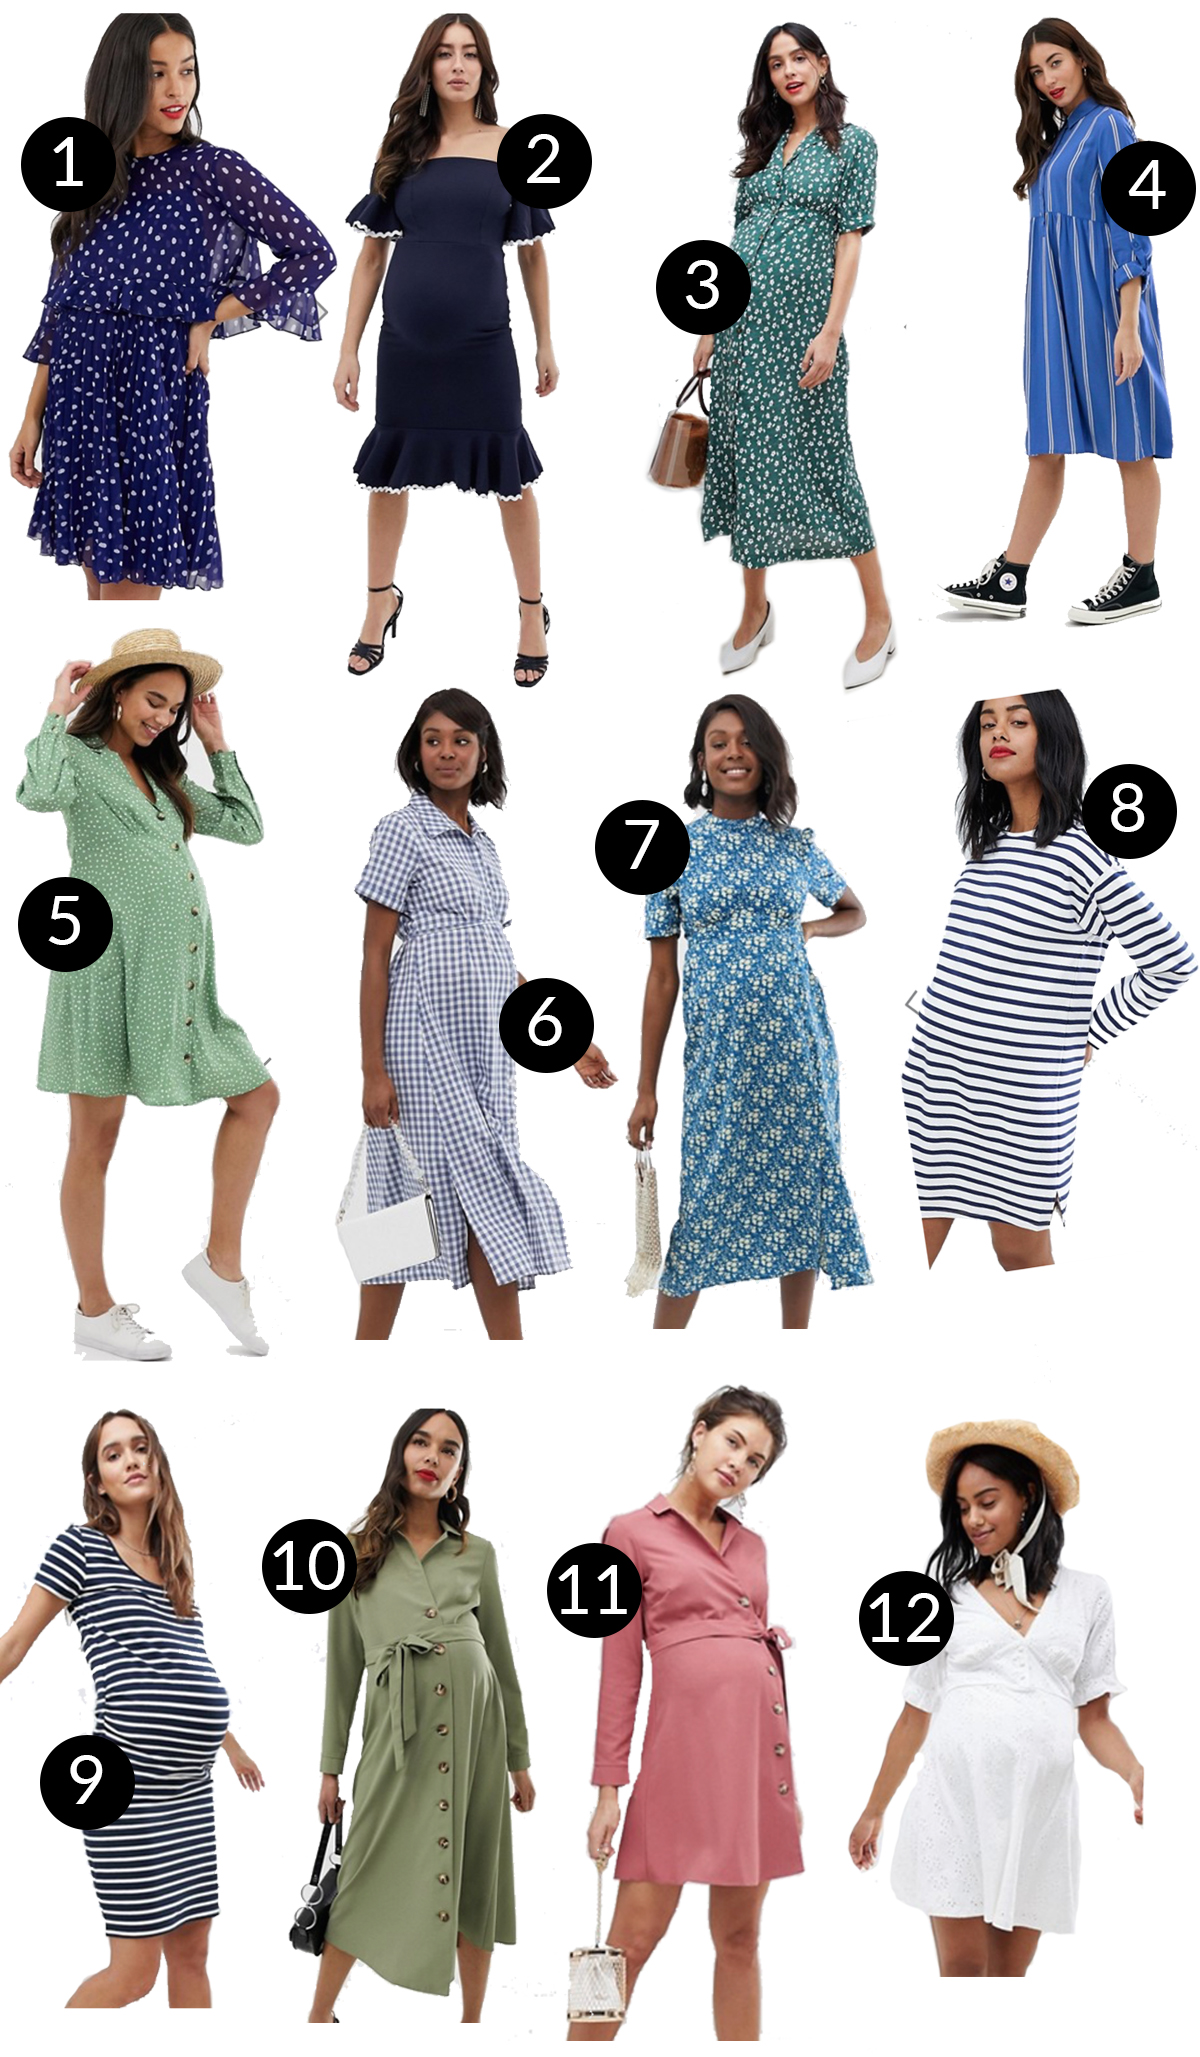 40d5d38a5a1 Cute + Affordable Maternity Dresses - Kelly in the City